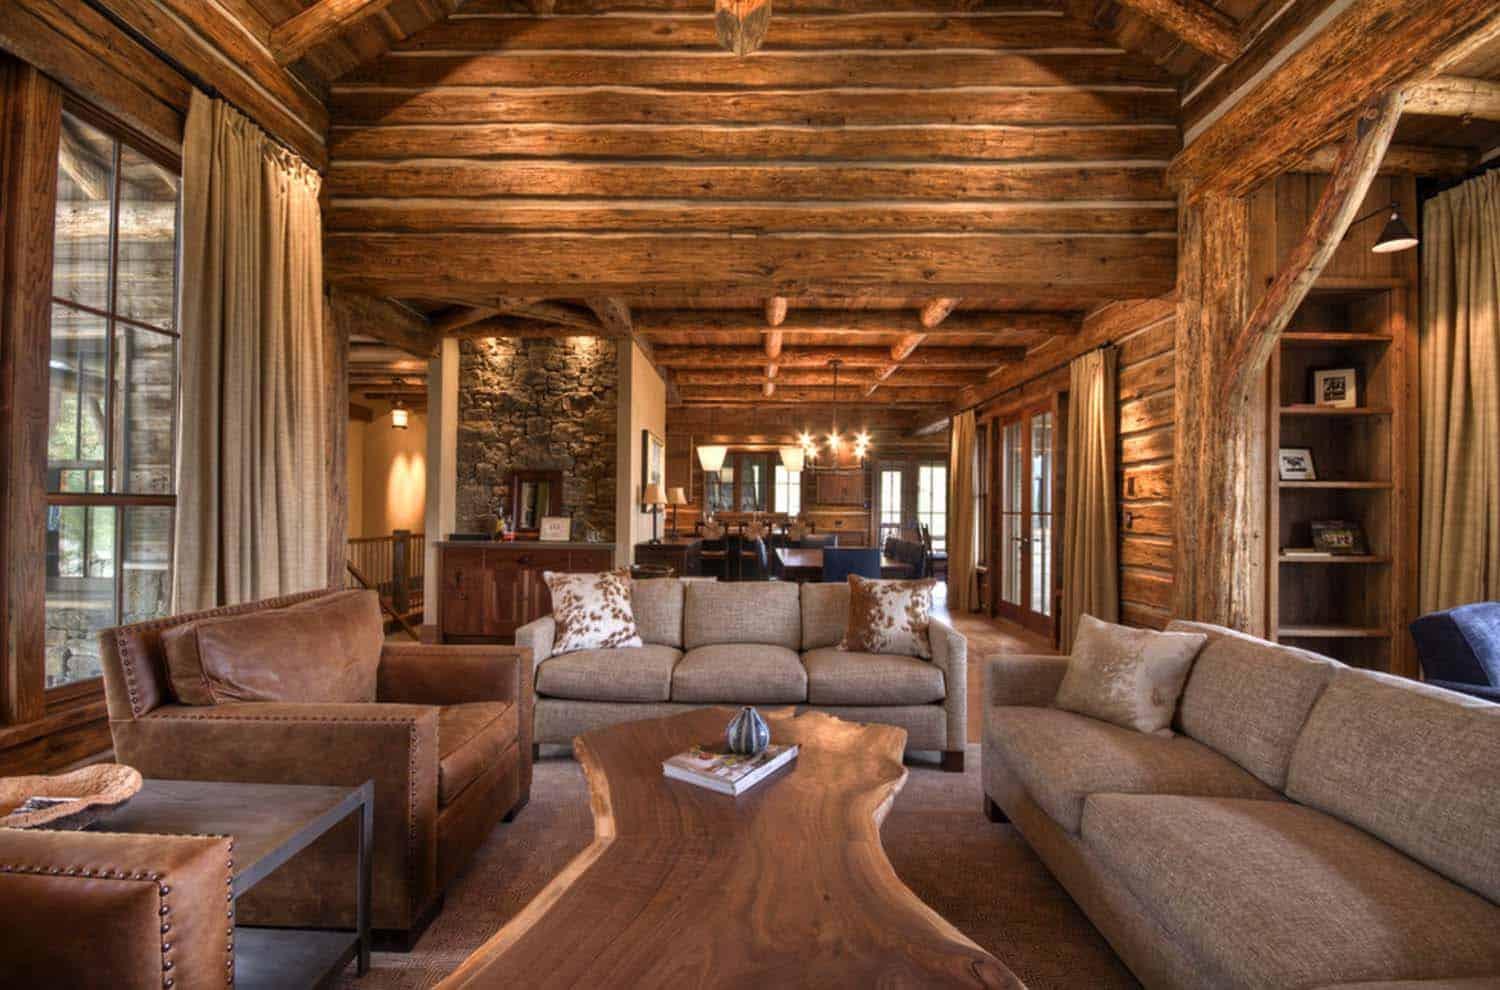 Rustic Mountain Home-Laura Fedro Interiors-04-1 Kindesign